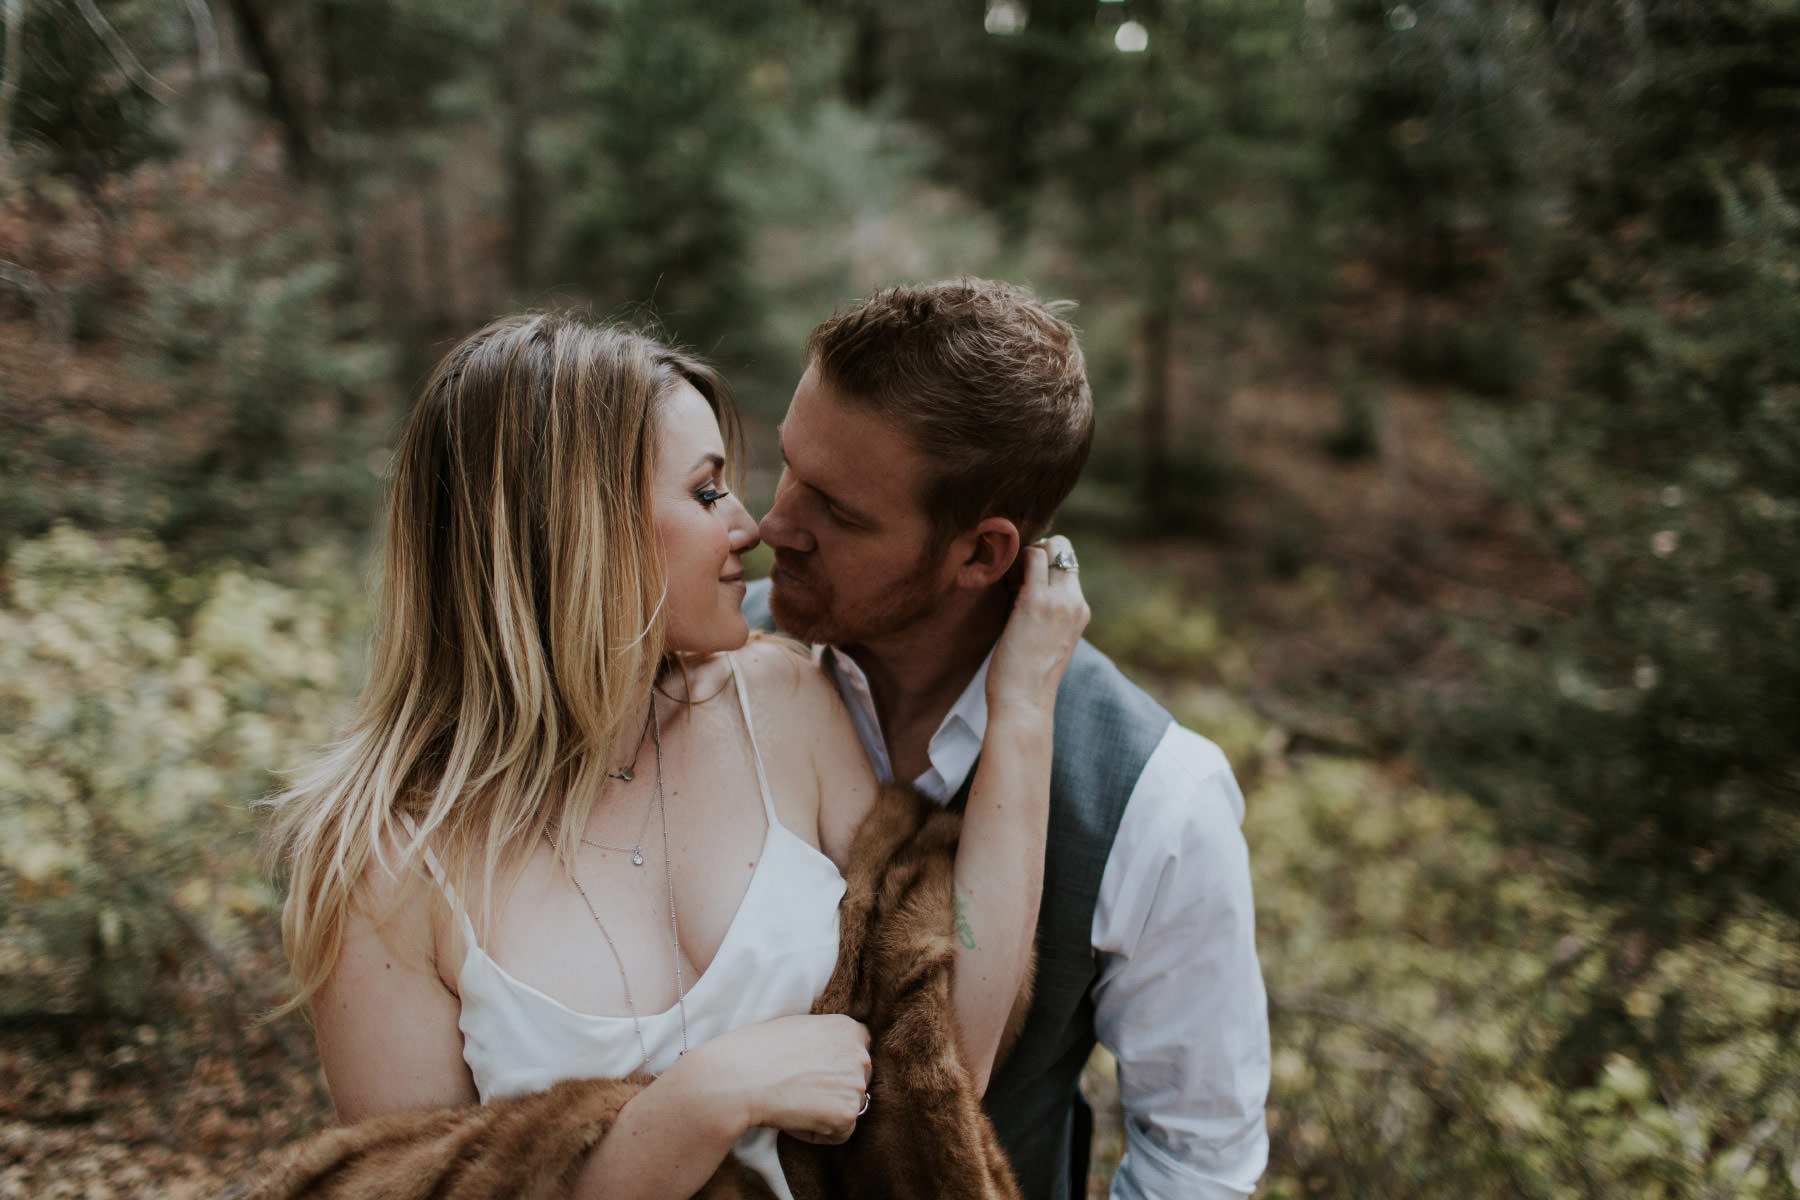 Intimate engagement session at Palomar Mountain